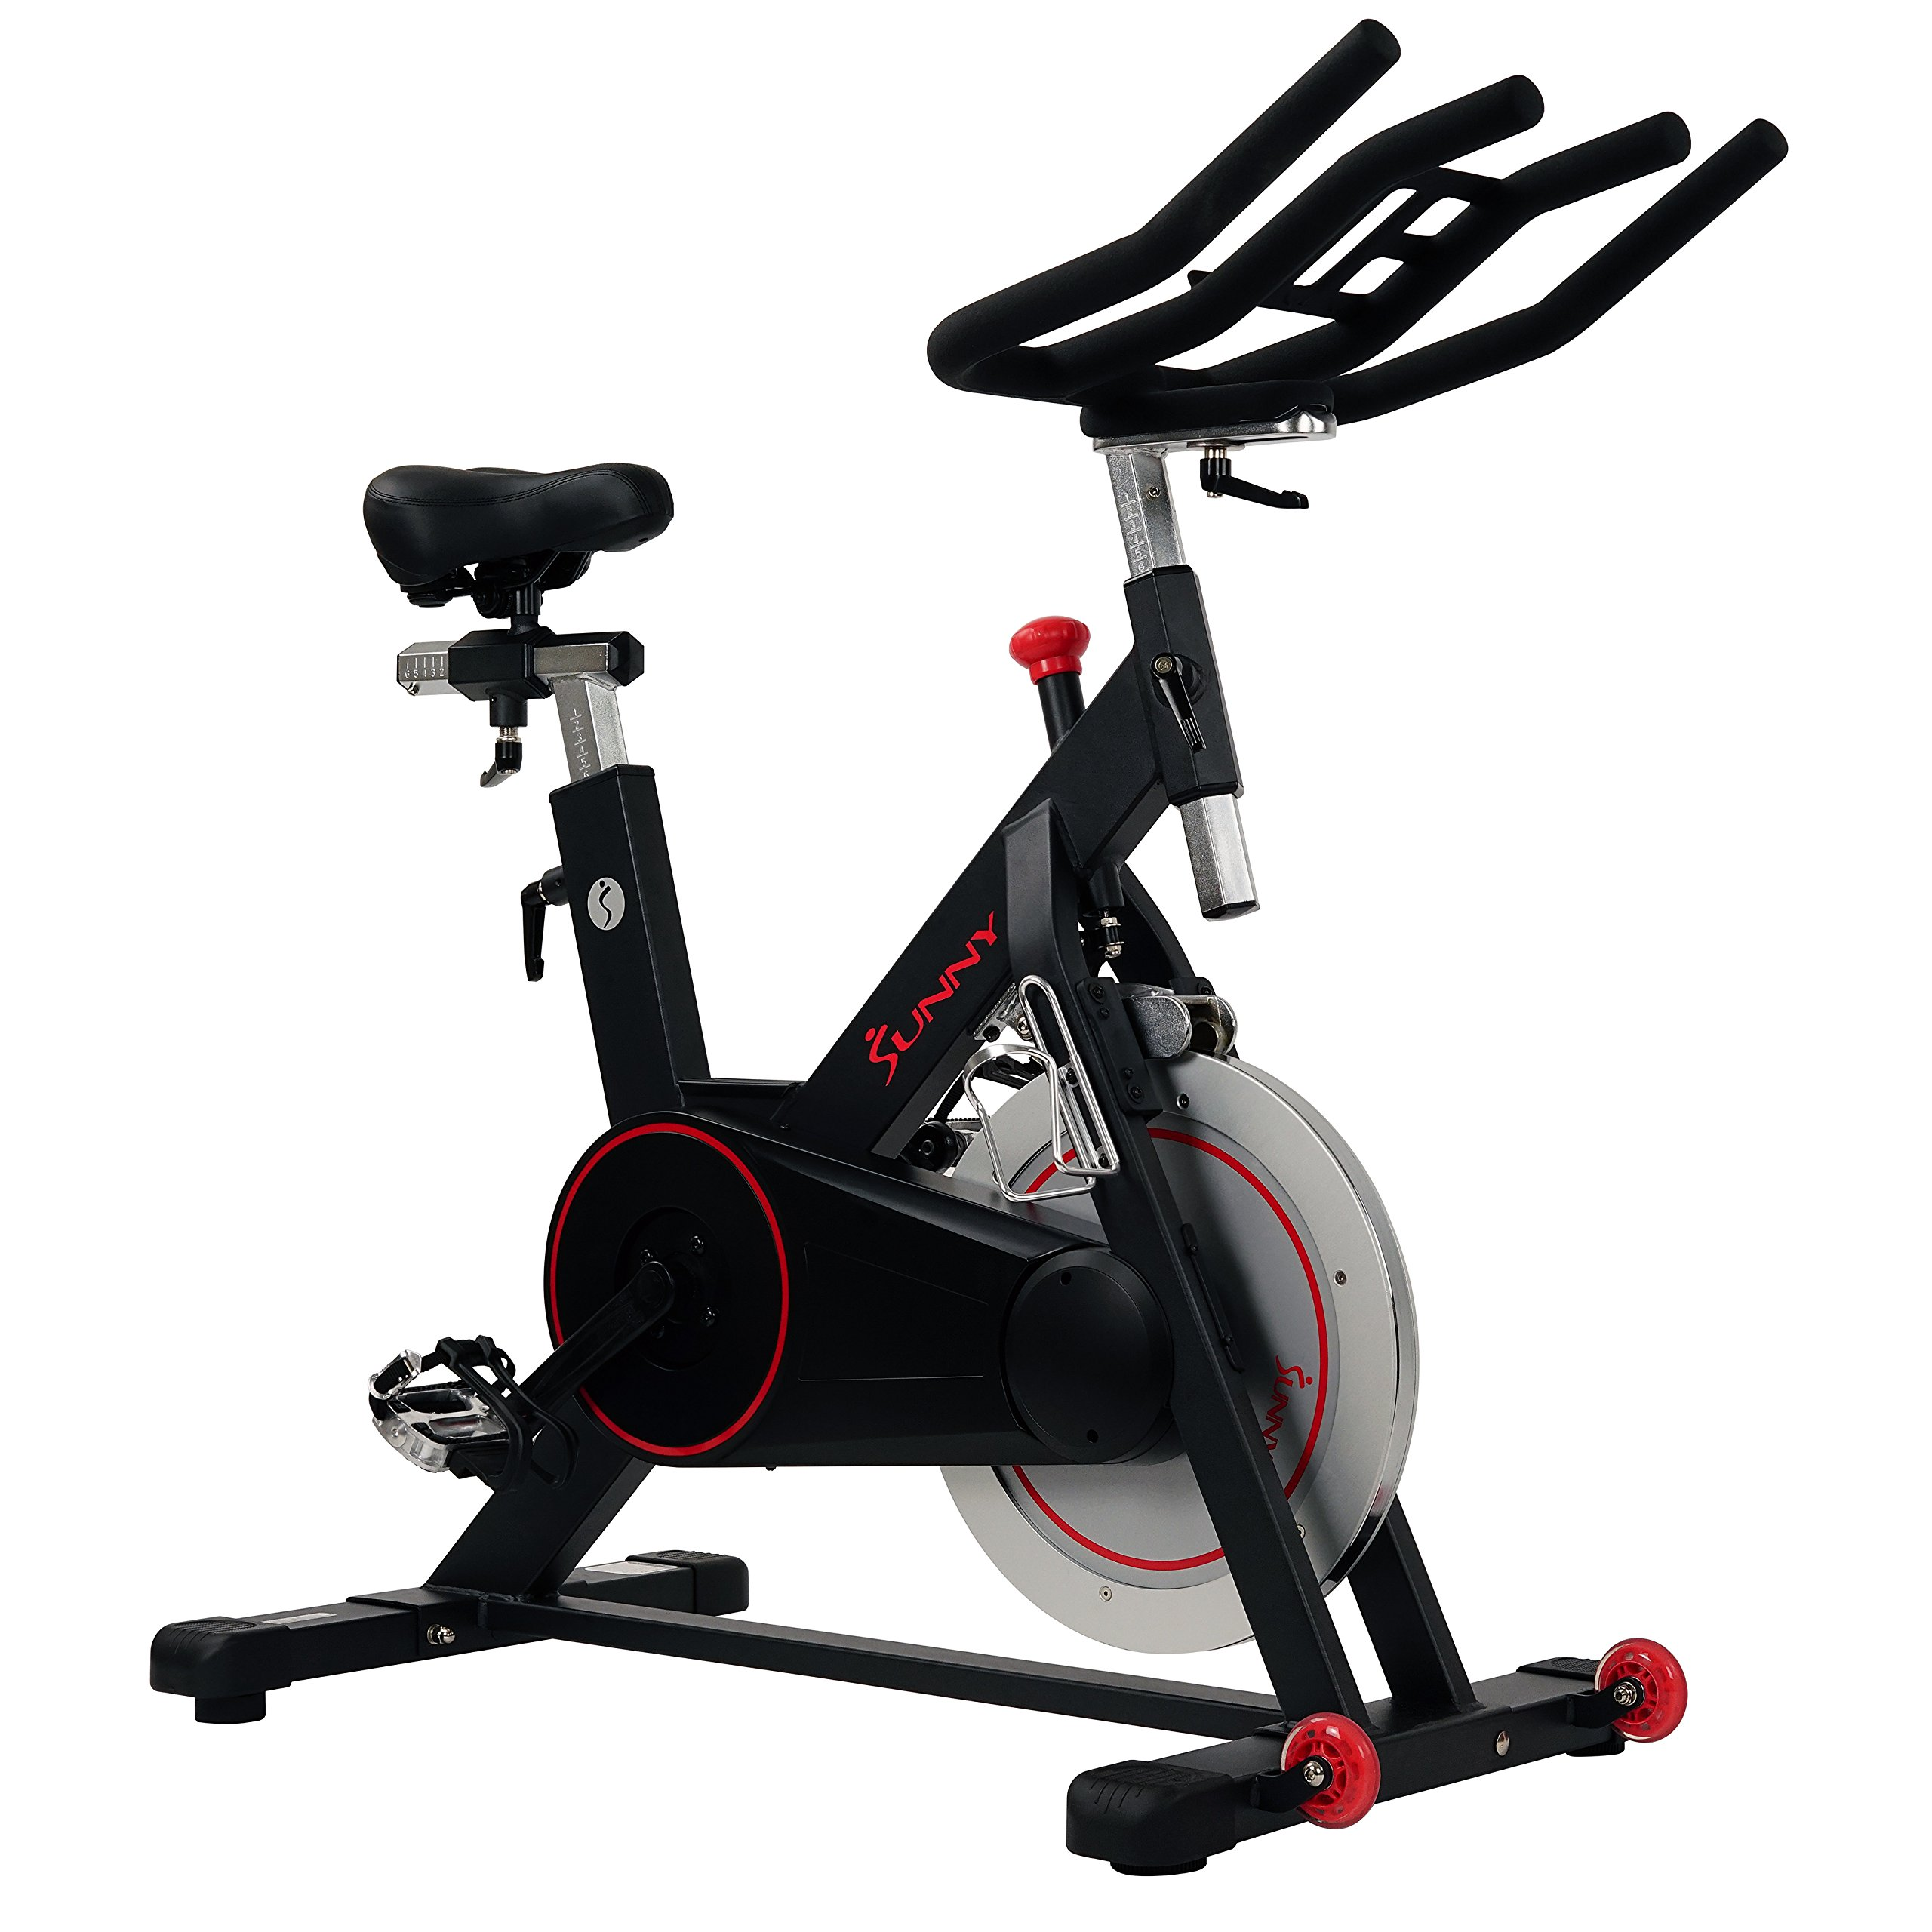 Sunny Health & Fitness Magnetic Belt Drive Indoor Cycling Bike with High Weight Capacity and Tablet Holder - SF-B1805 by Sunny Health & Fitness (Image #1)